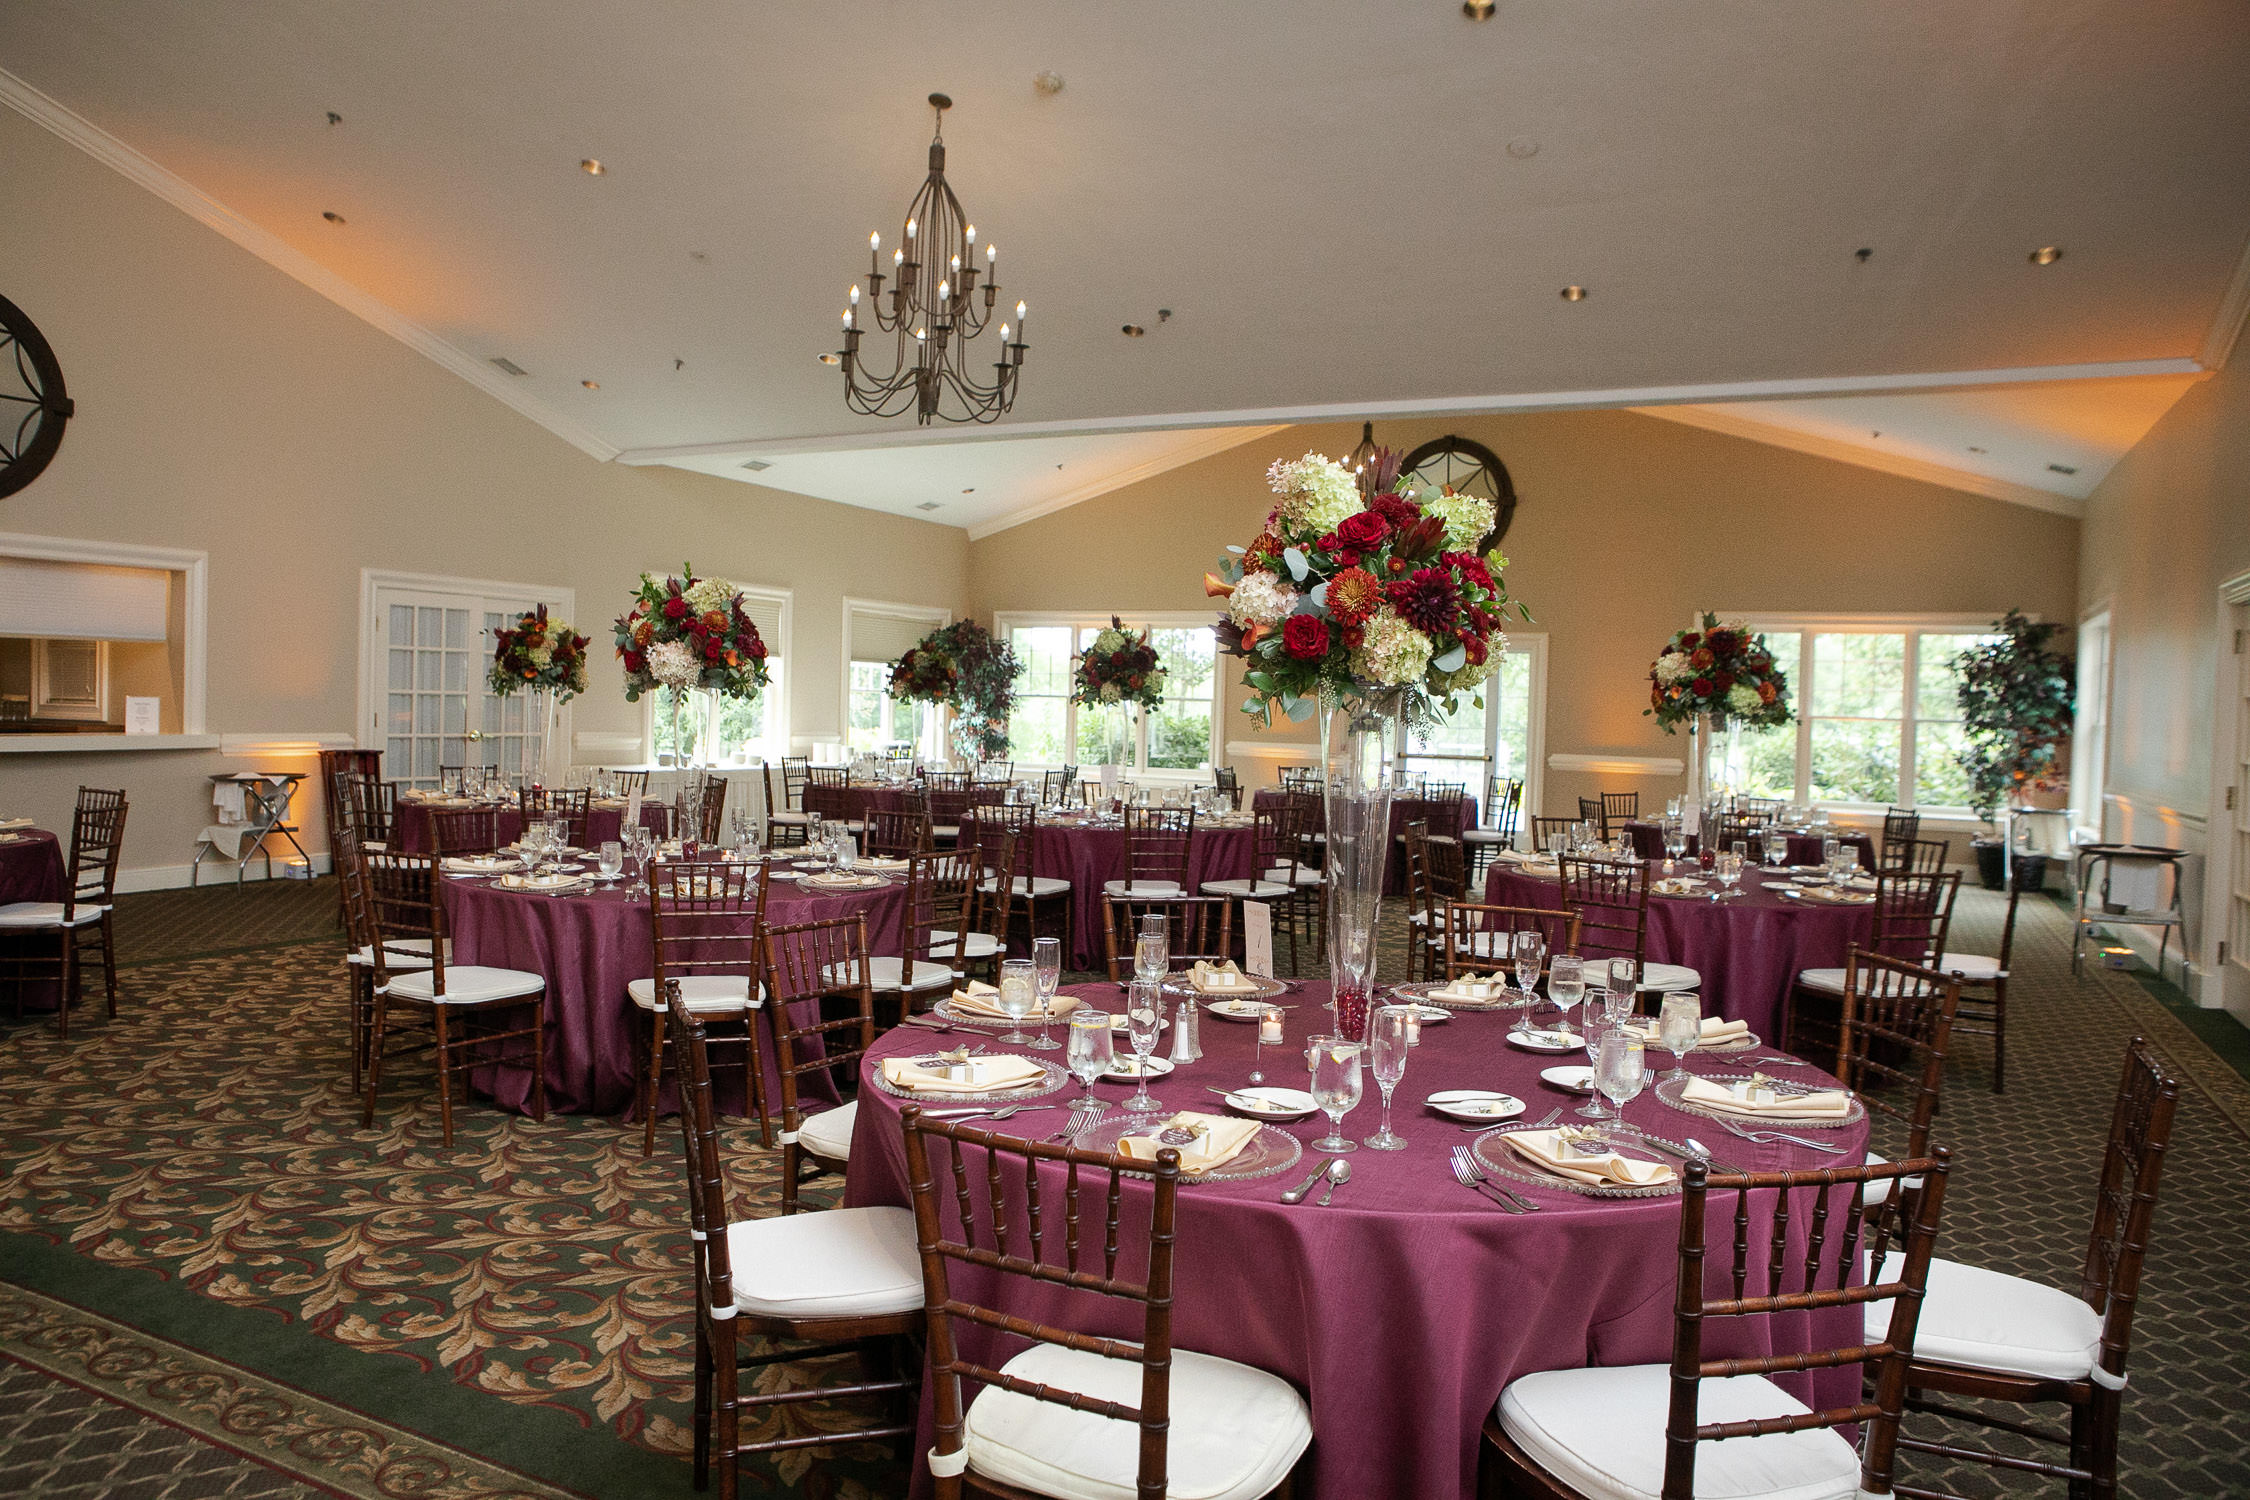 cyprian keyes wedding photos, centerpieces by Danielson's Flowers